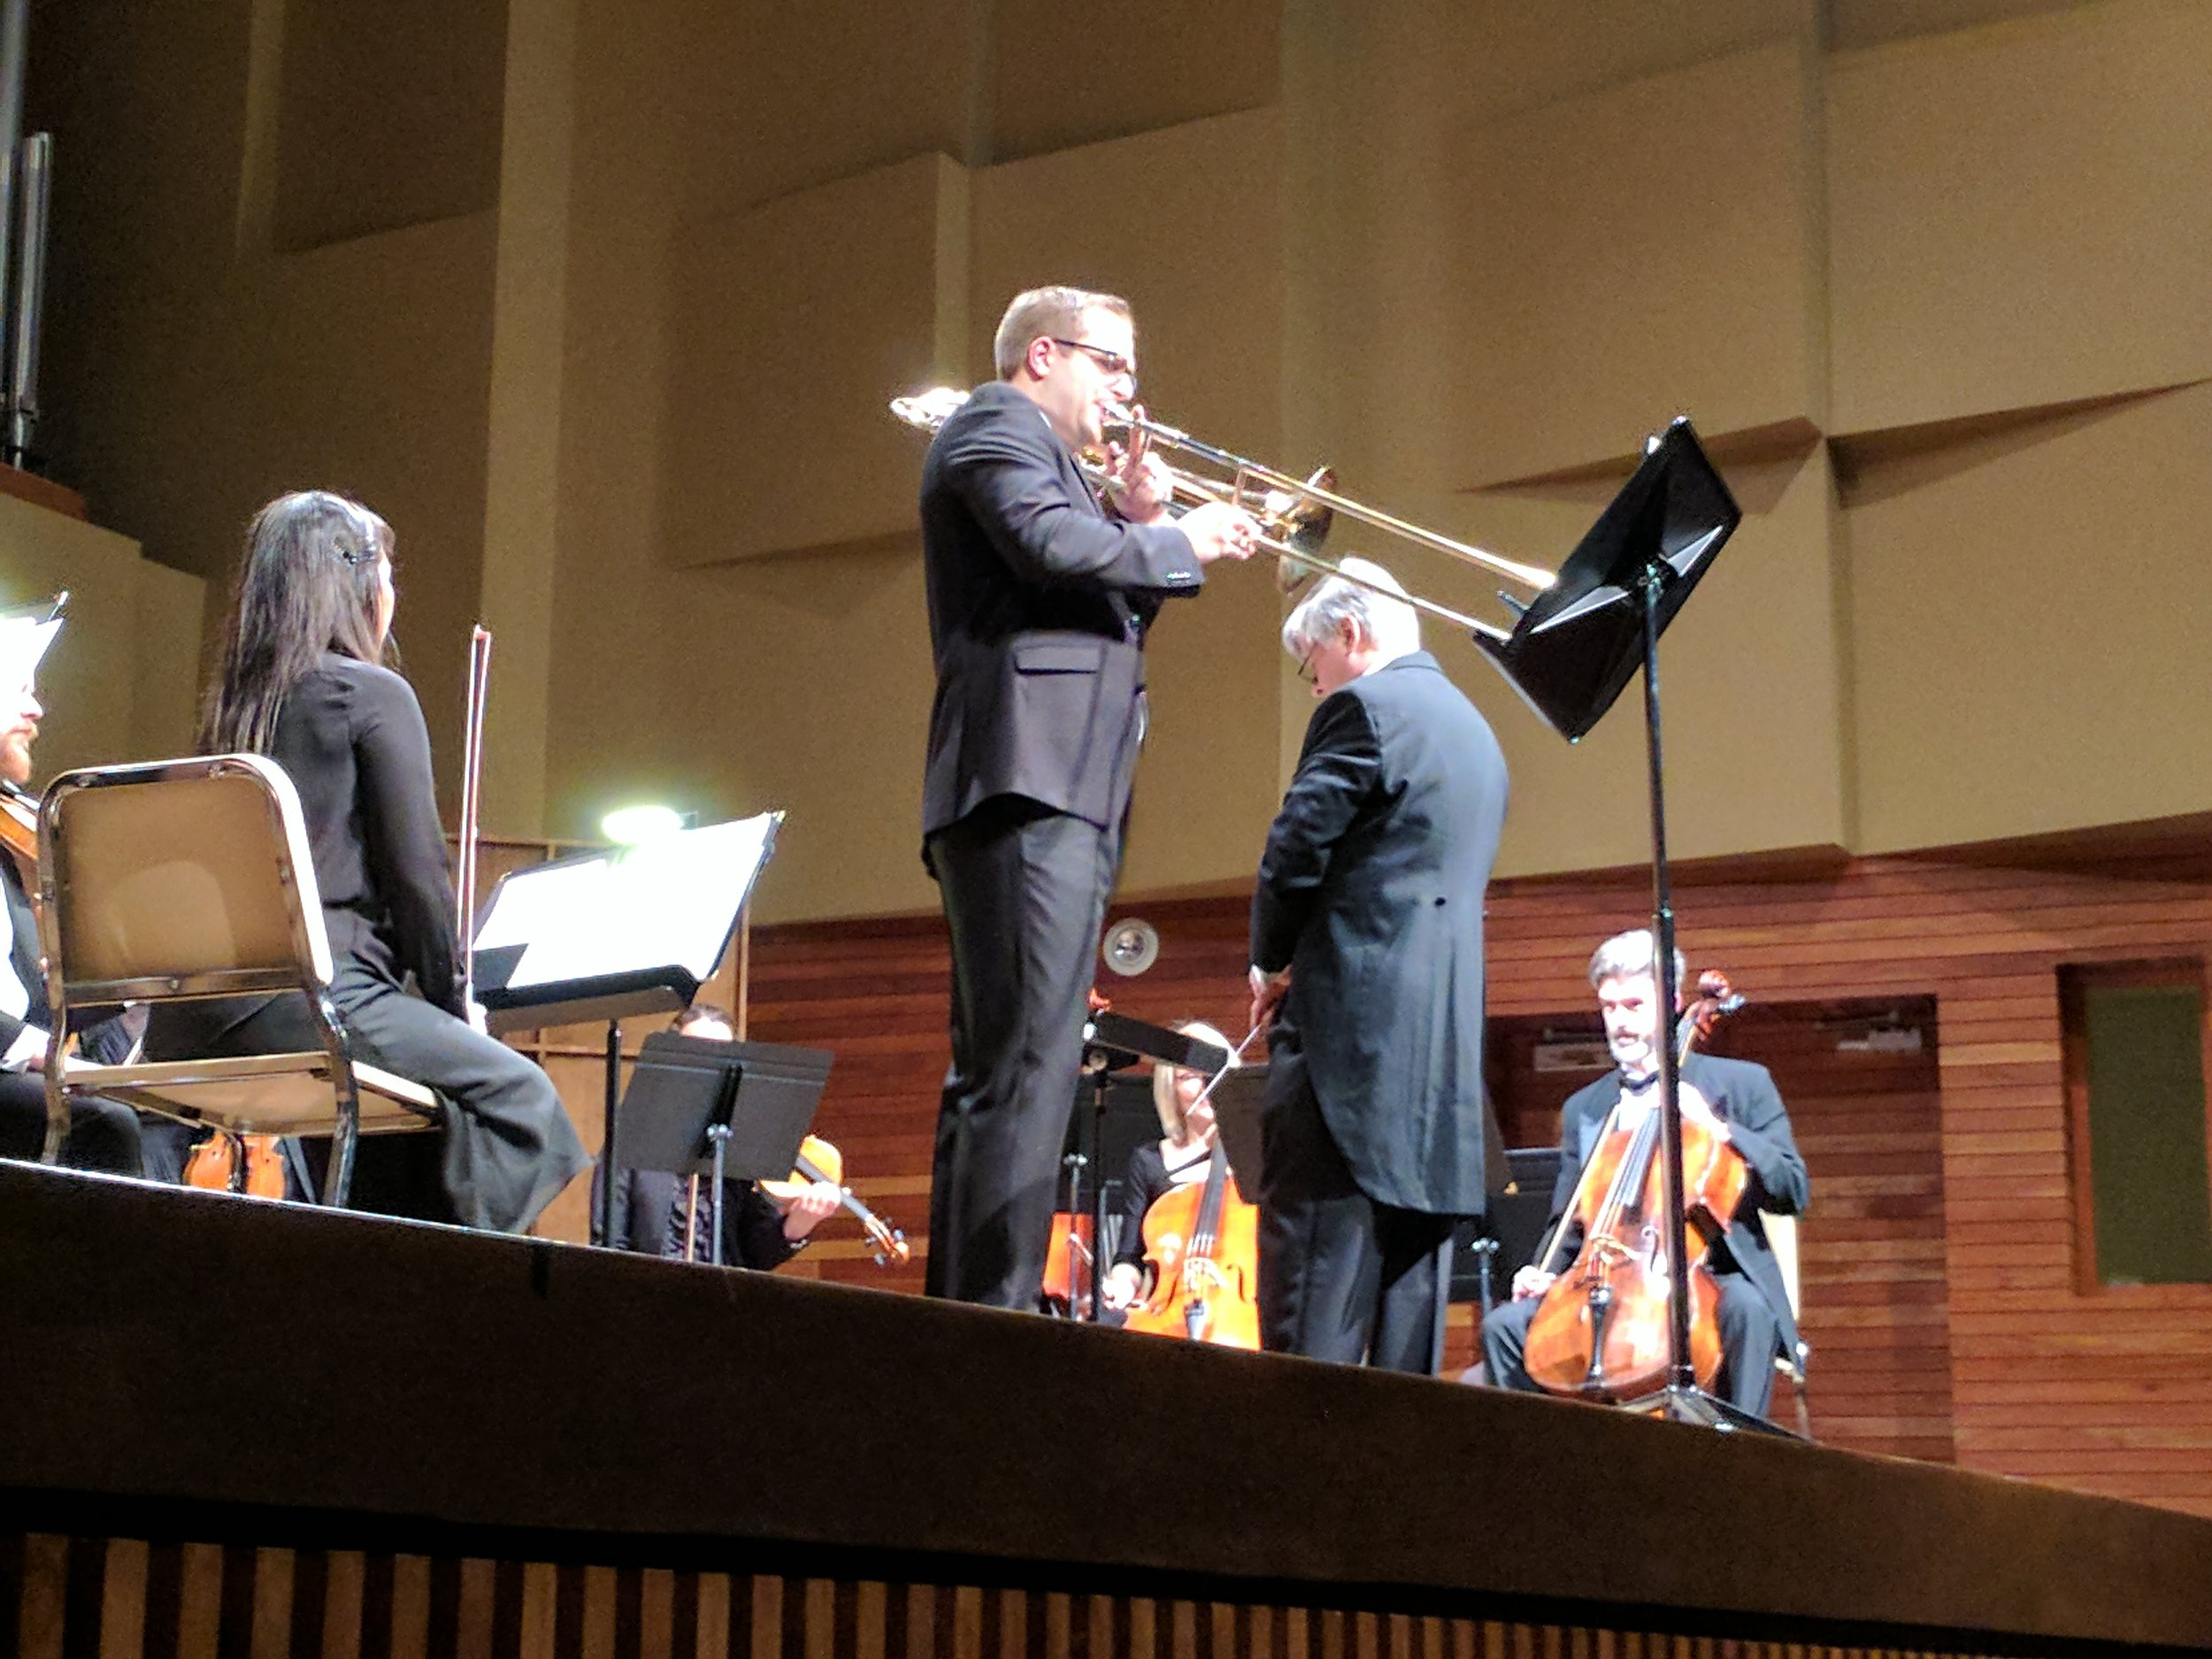 Performing with the Newfoundland Symphony Orchestra